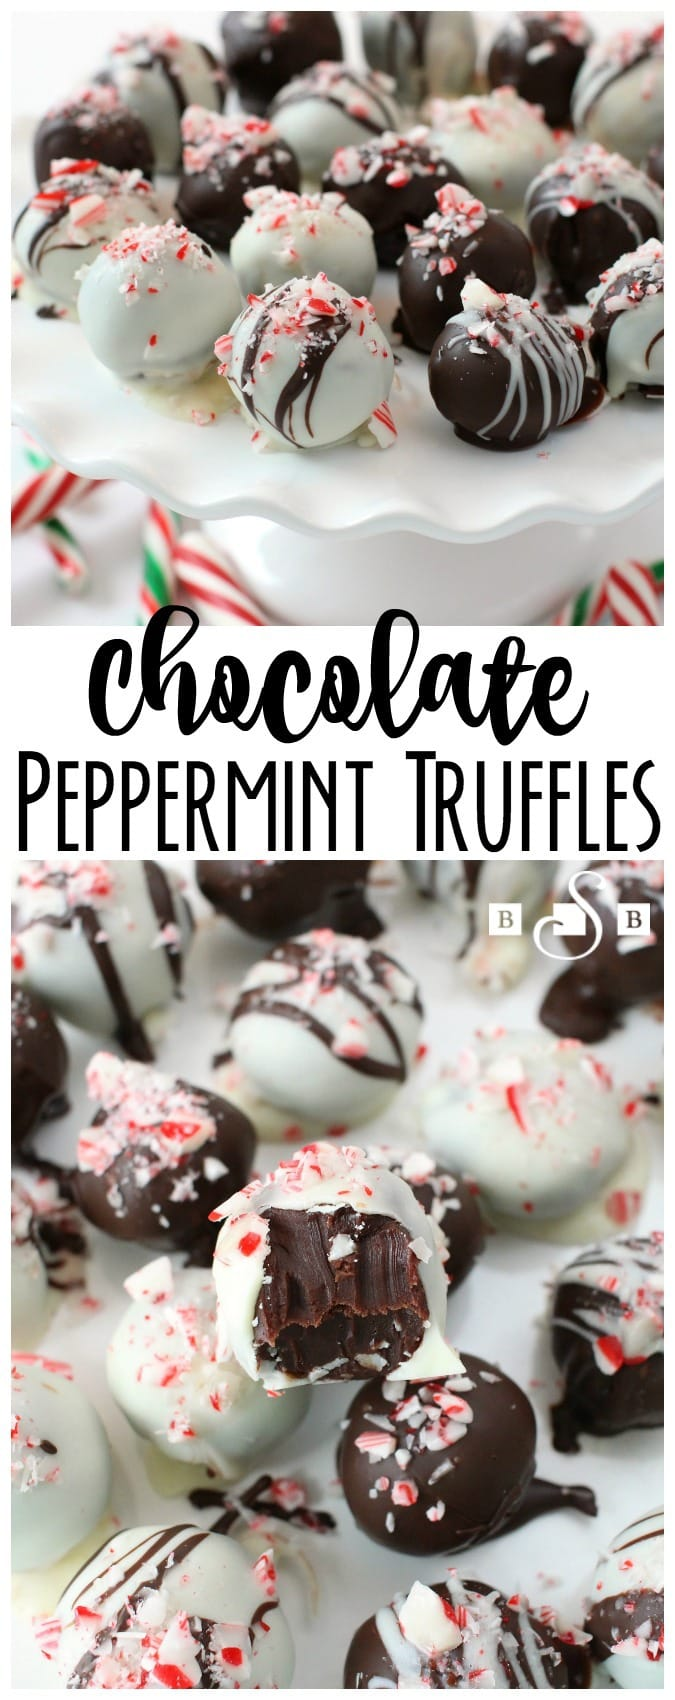 Truffles are a great holiday treat and these ones are no exception! The peppermint and chocolate flavors are so tasty together and always make us want more!